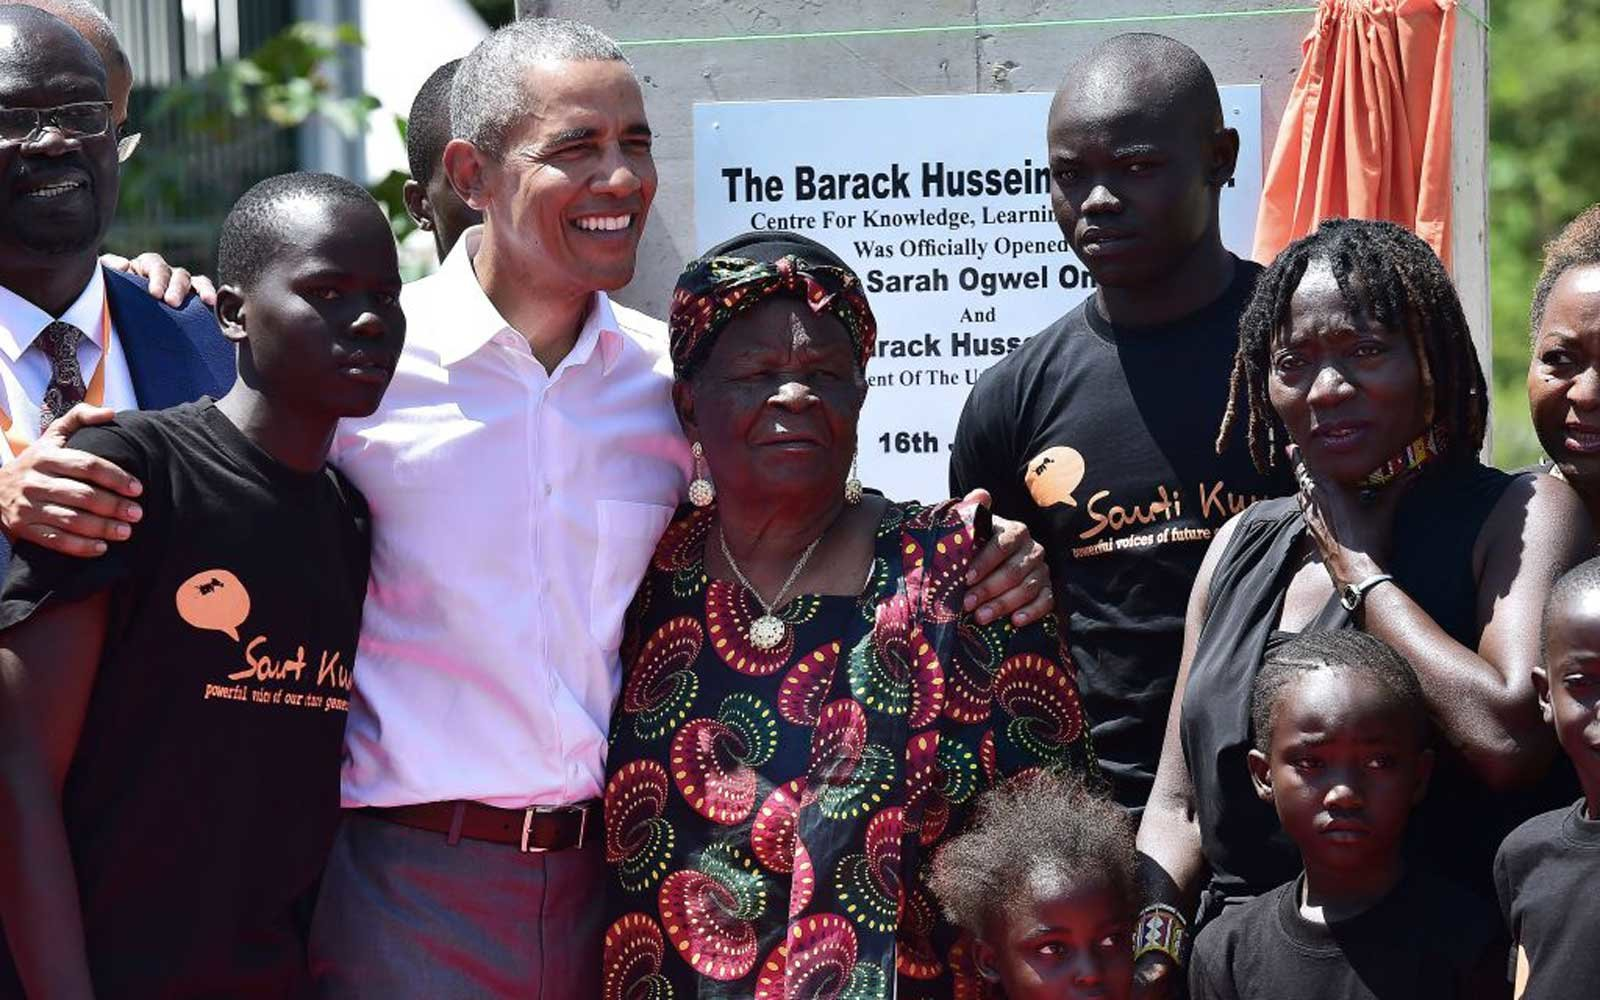 Former US President, Barack Obama (C) with his step-grandmother Sarah (2R) and half-sister, Auma (L) arrive to unveil a plaque on July 16, 2018 during the opening of the Sauti Kuu Resource Centre, founded by his half-sister, Auma Obama at Kogelo in Siaya